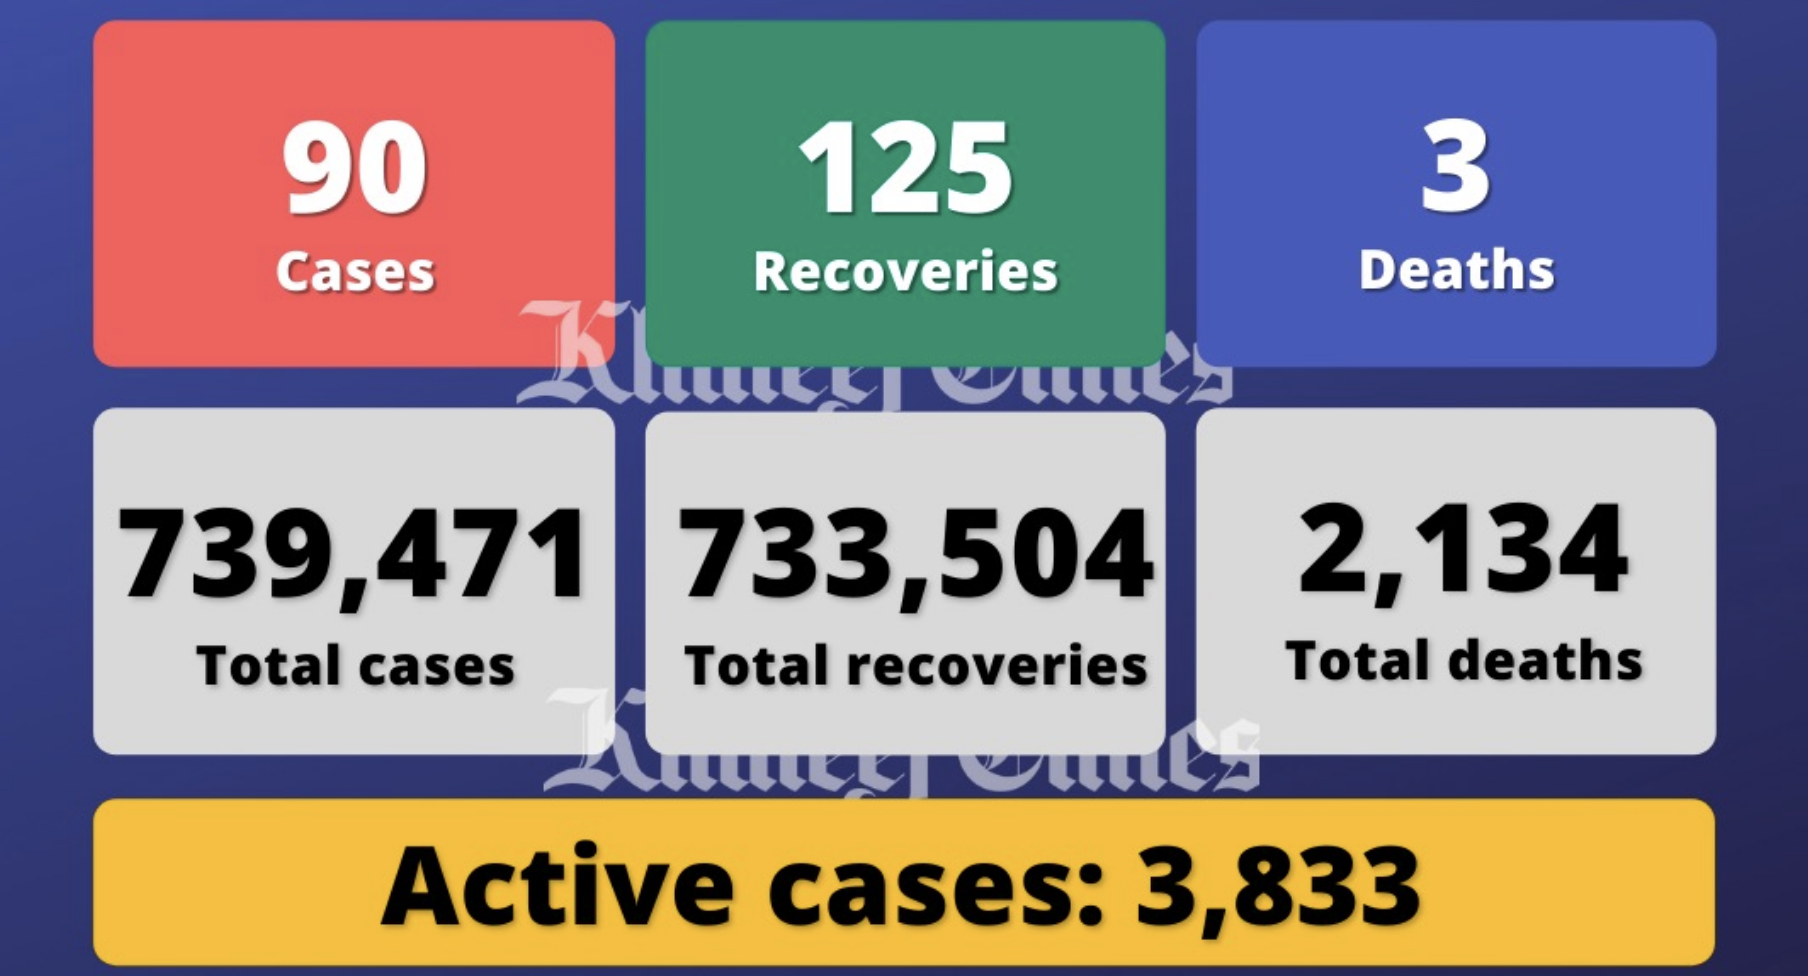 UAE reports 90 Covid-19 cases, 125 recoveries, 3 deaths